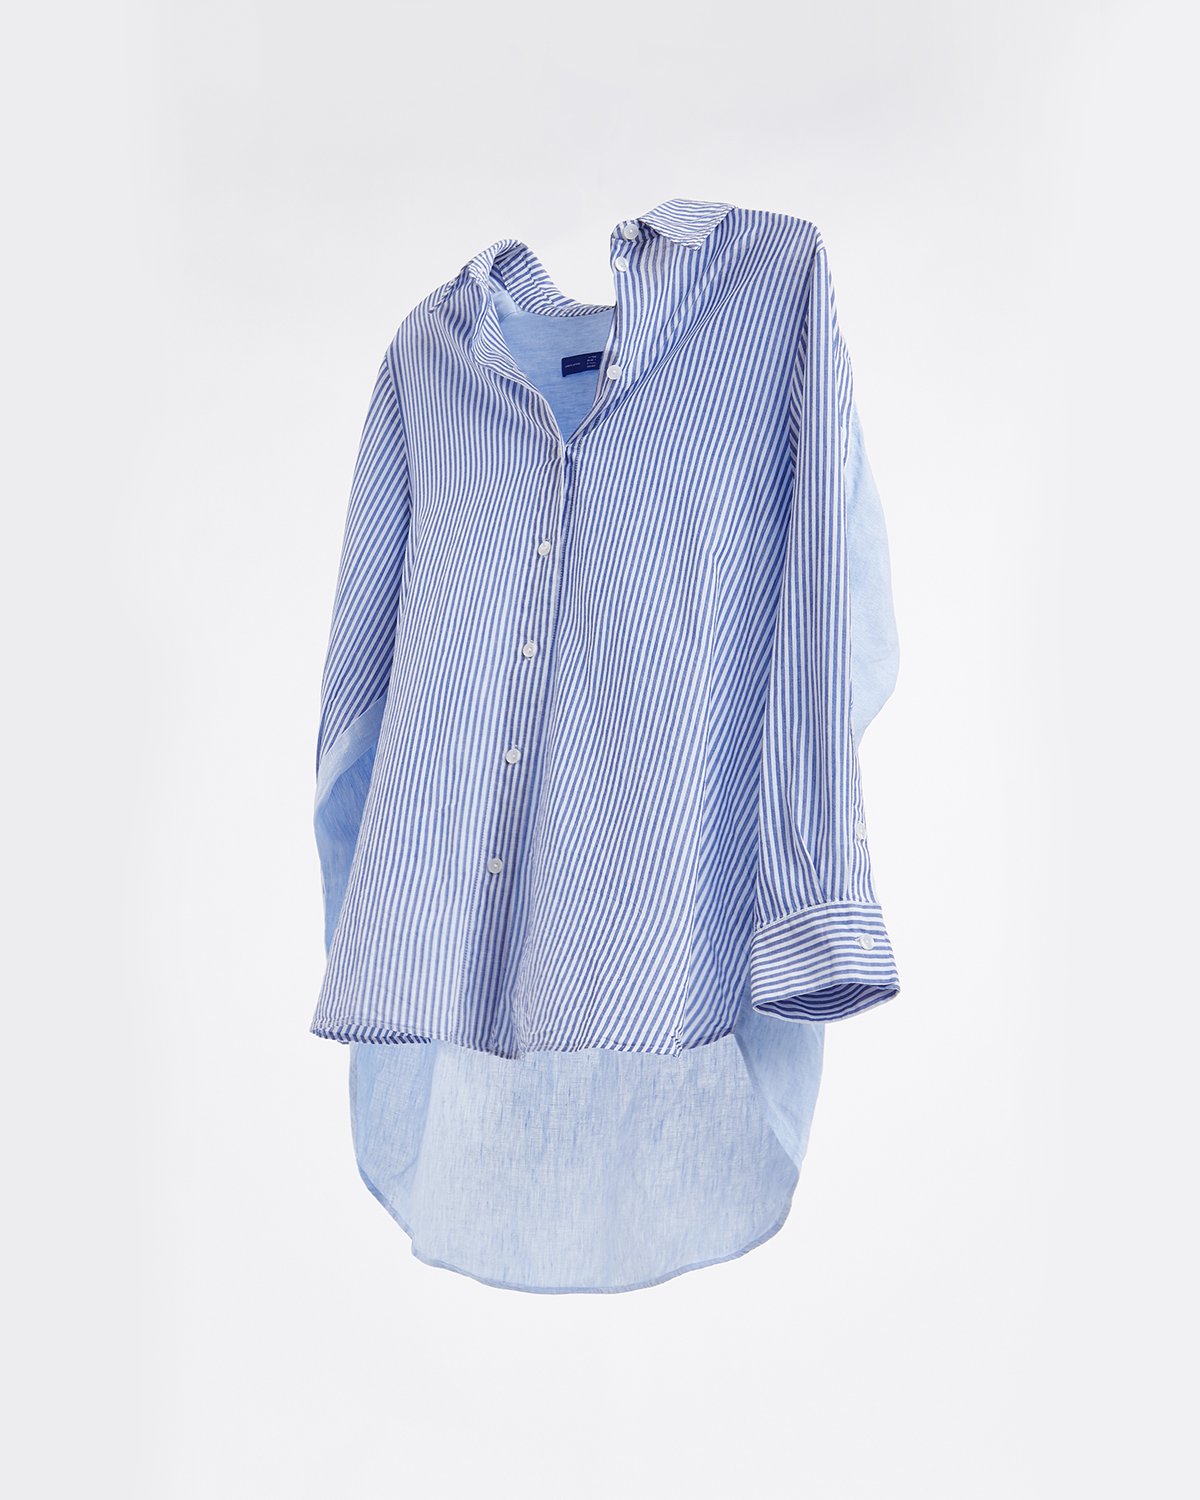 Linen Oversize Button Shirt - Stripe n Solid No.1